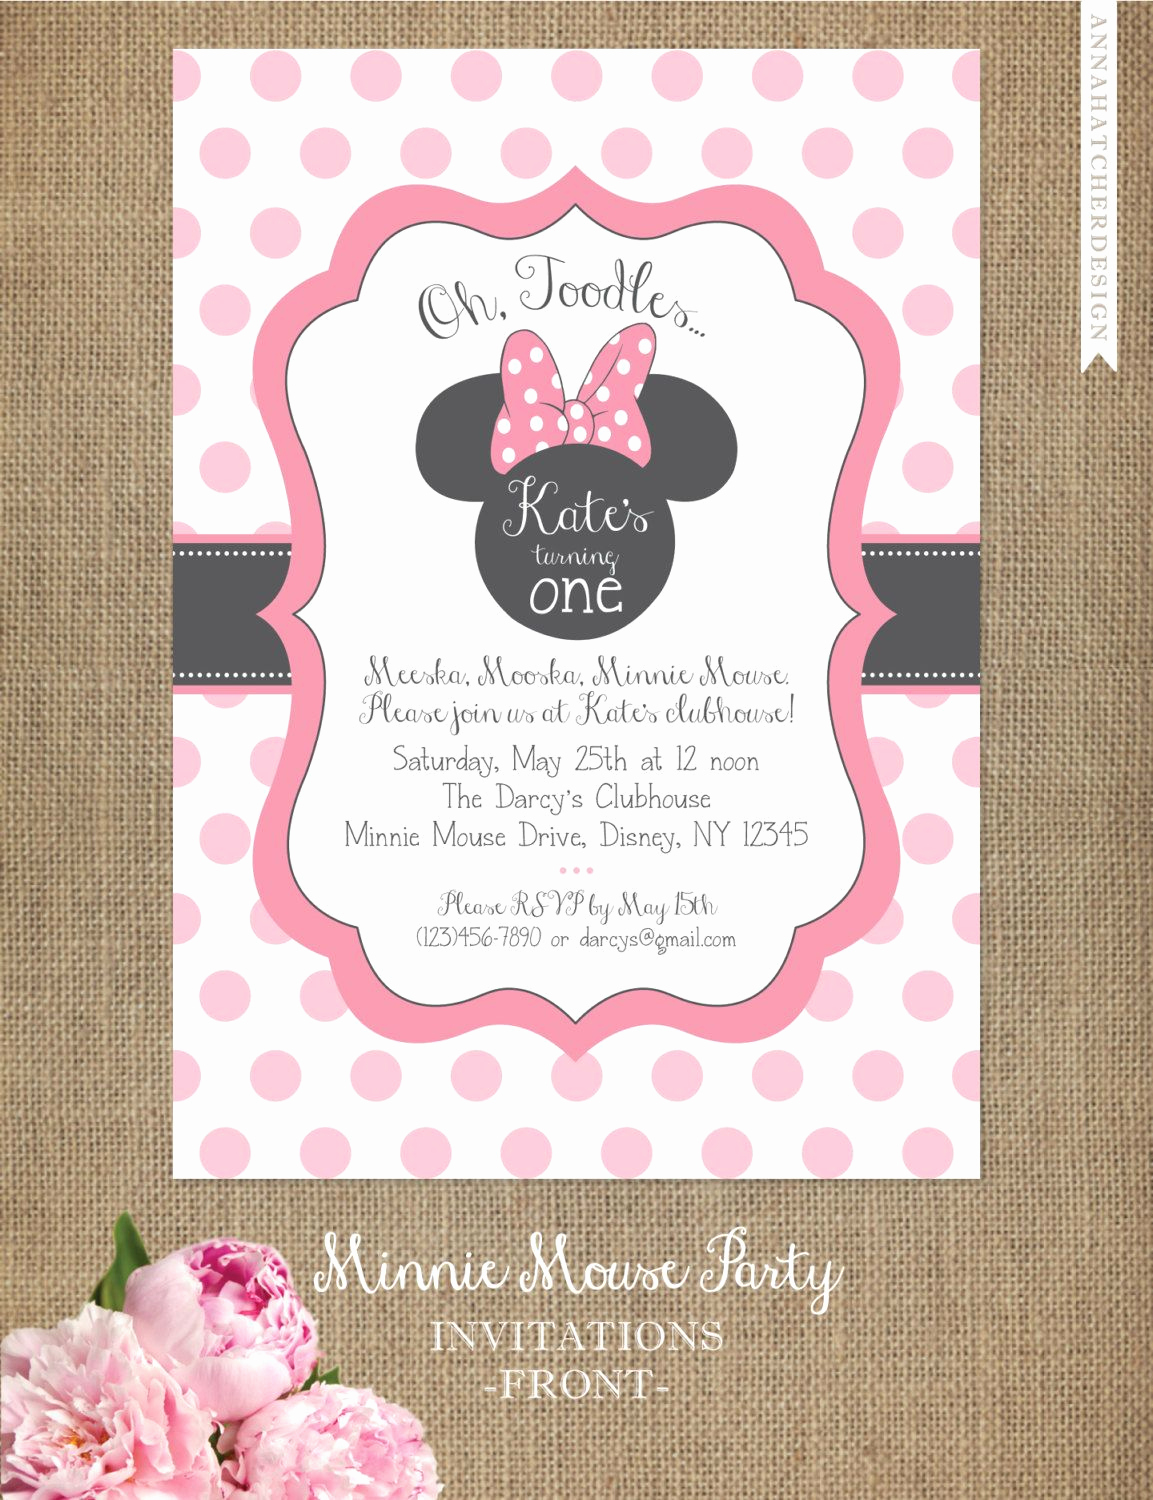 Minnie Mouse Invitation Card Unique Minnie Mouse Invitations Cards Pinterest